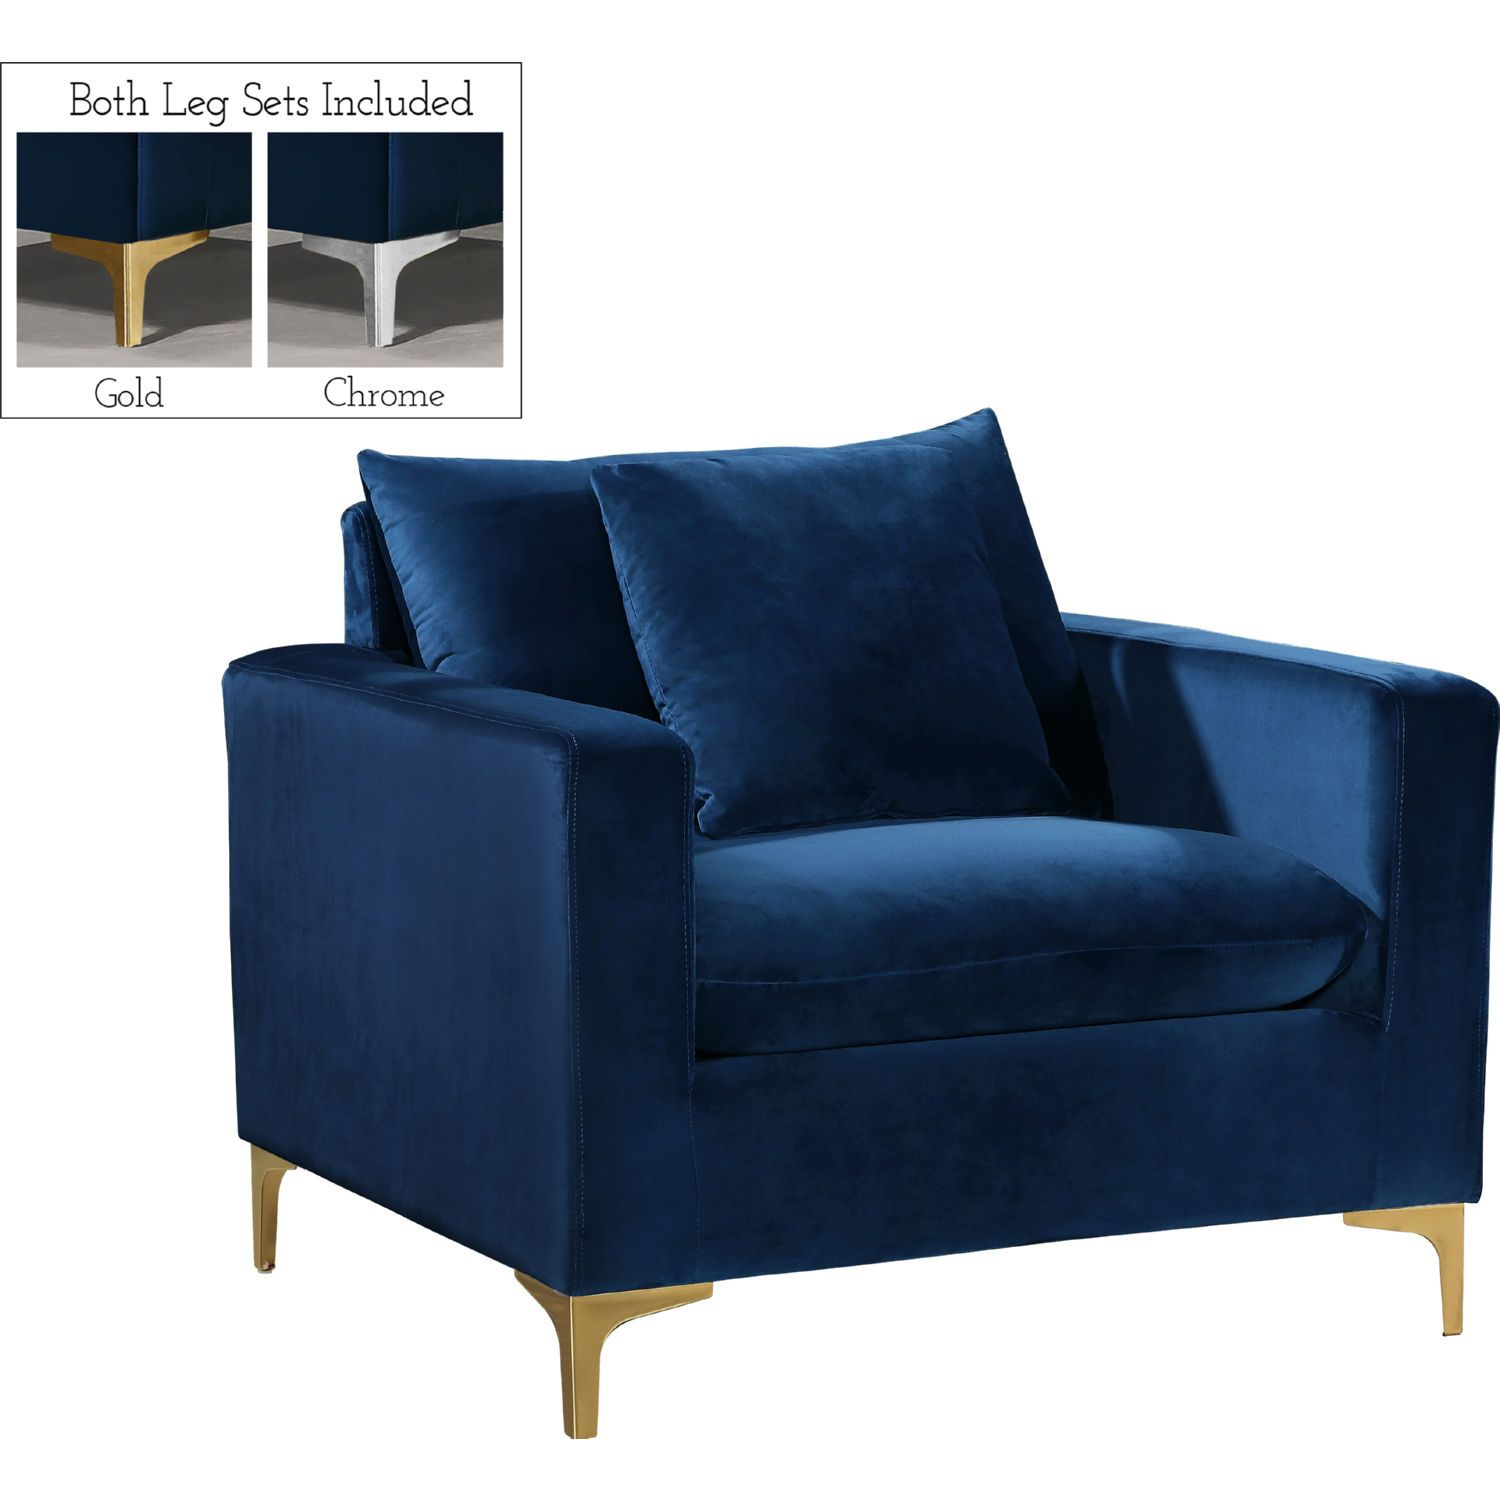 Meridian Furniture 633navy C Naomi Accent Chair Navy Velvet Gold